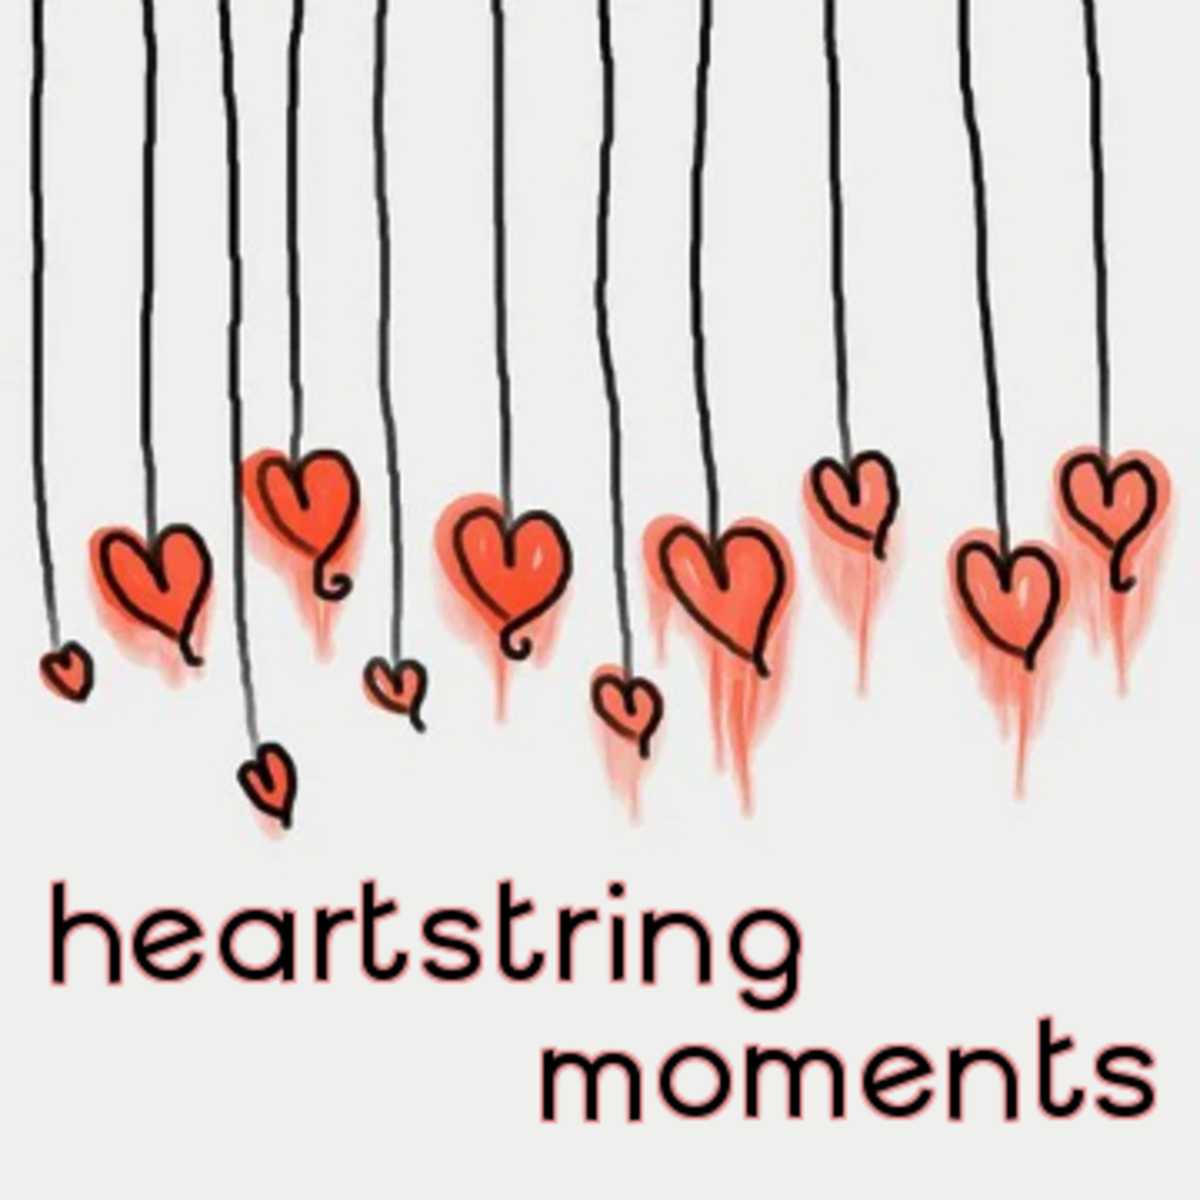 poem-heartstring-moments